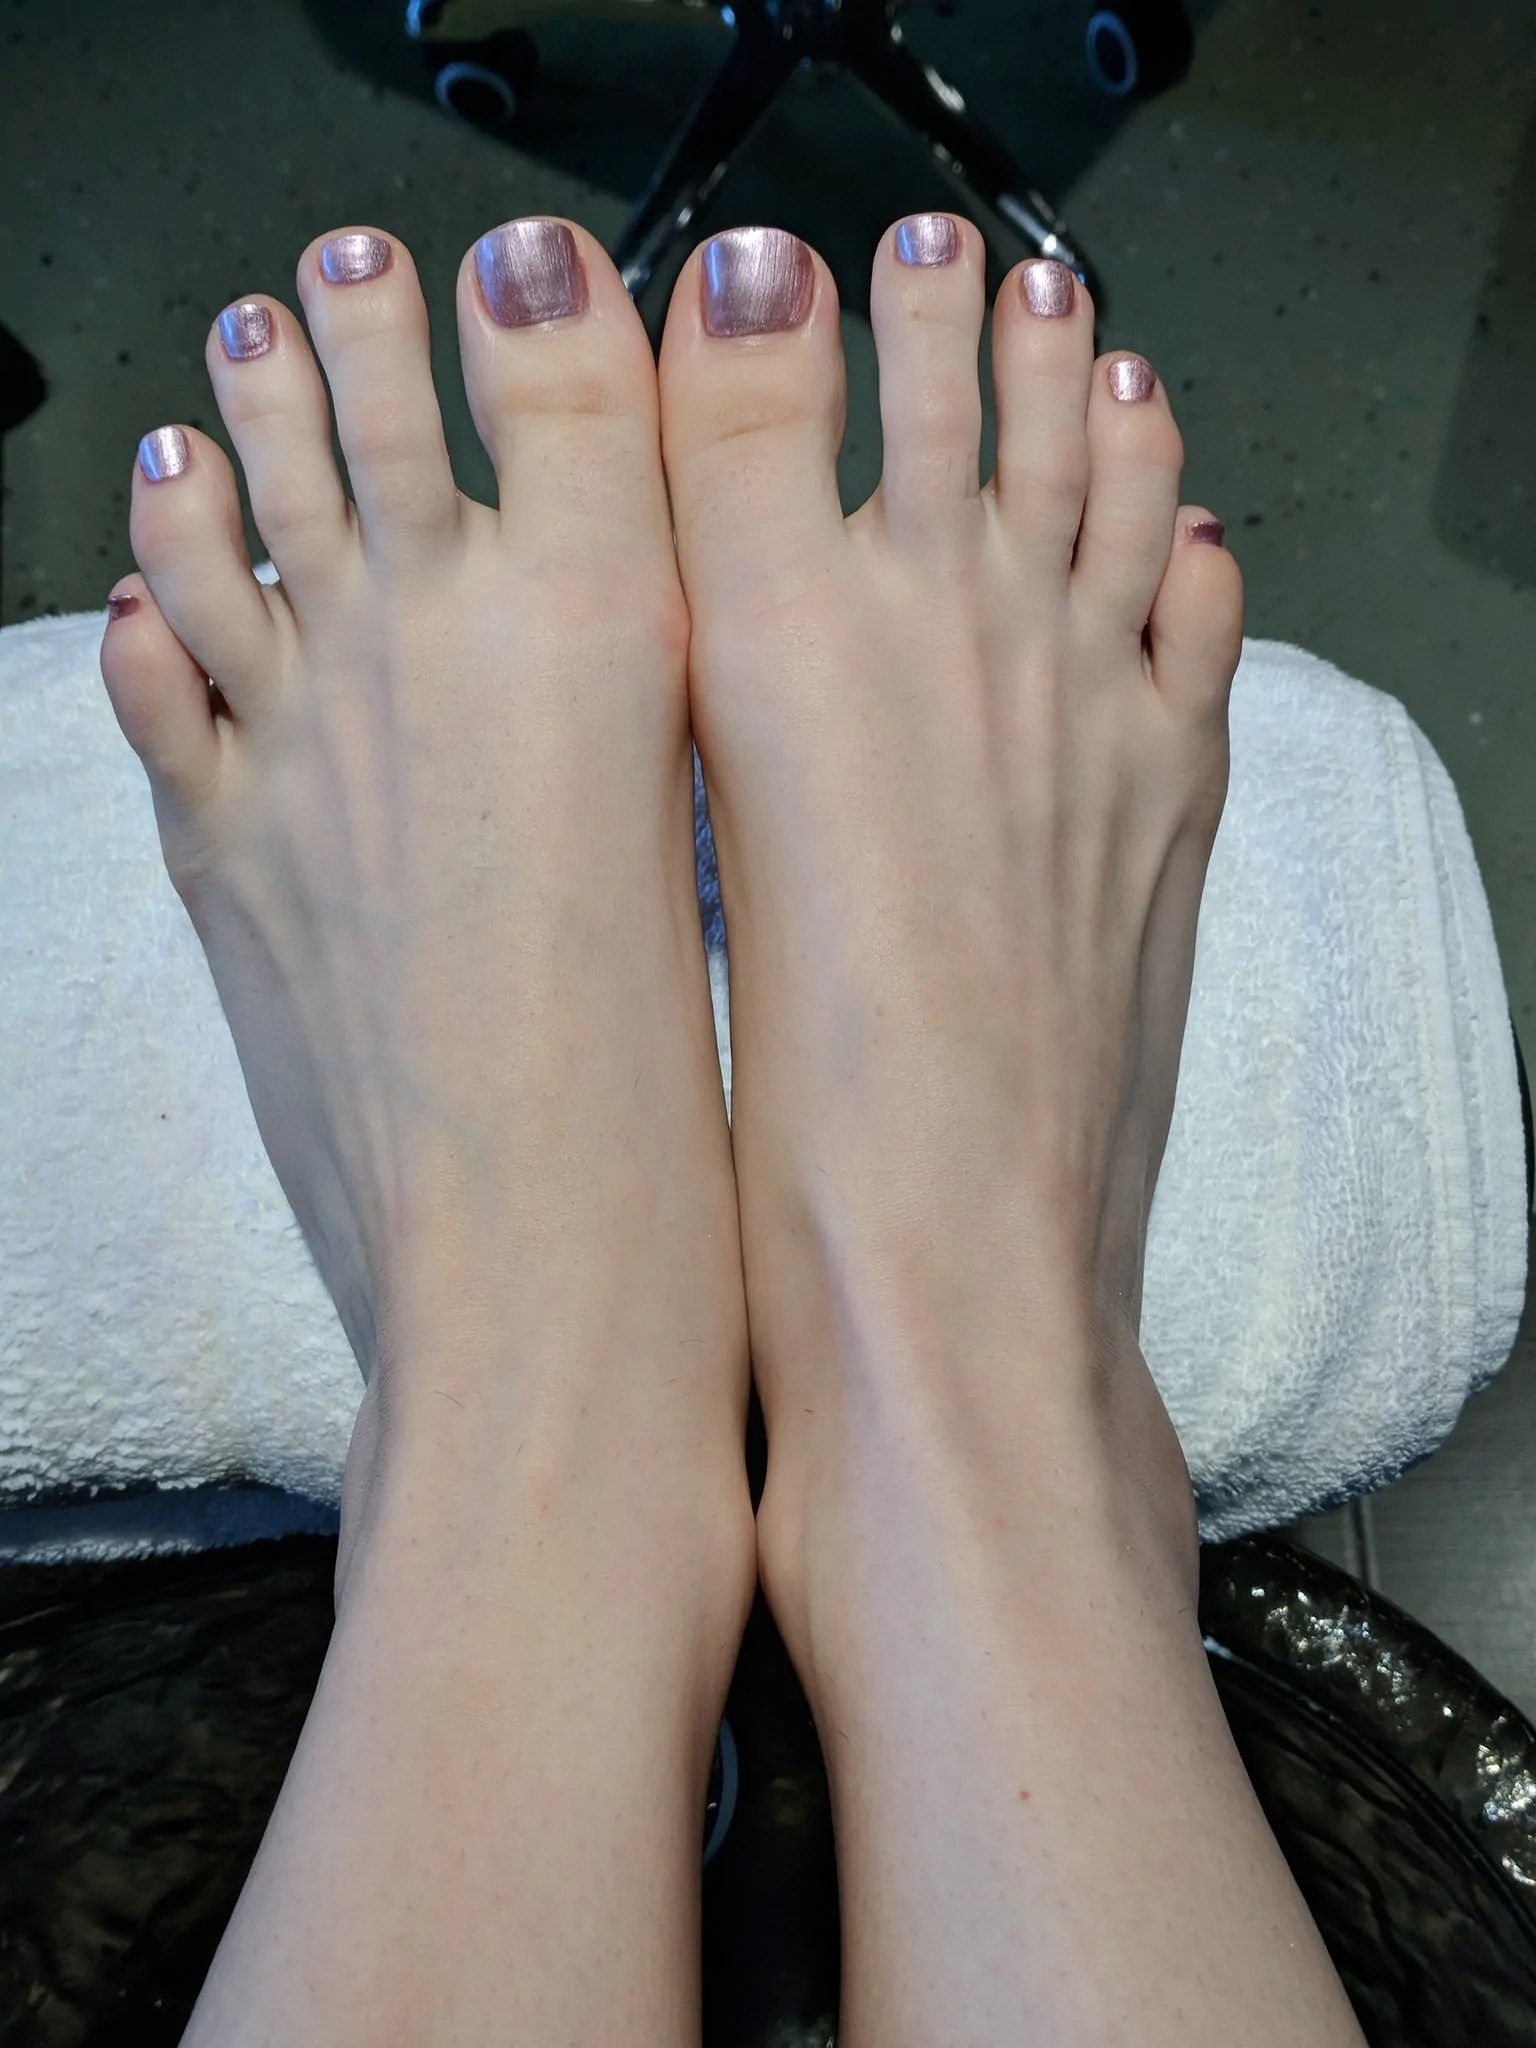 Seattle foot fetish mistress enraylls and her shiny pink toe nails